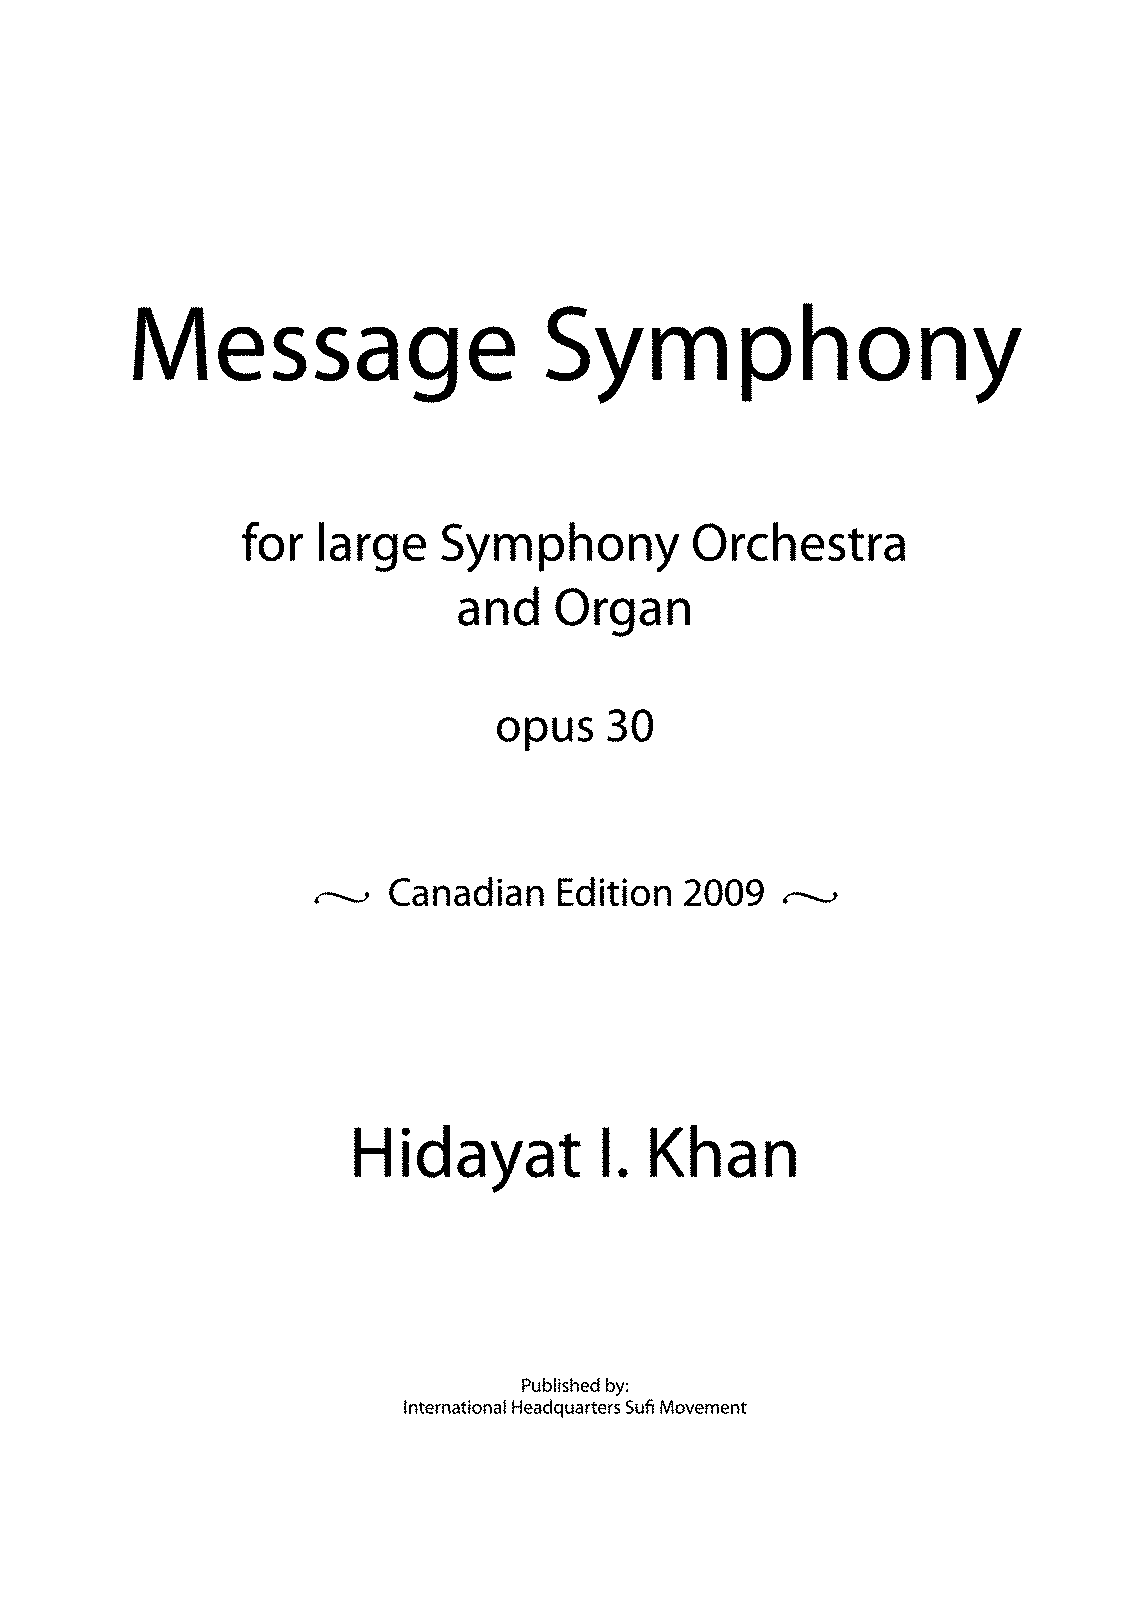 PMLP430927-30-Message-Symphony-Complete-Canadian-Edition.pdf